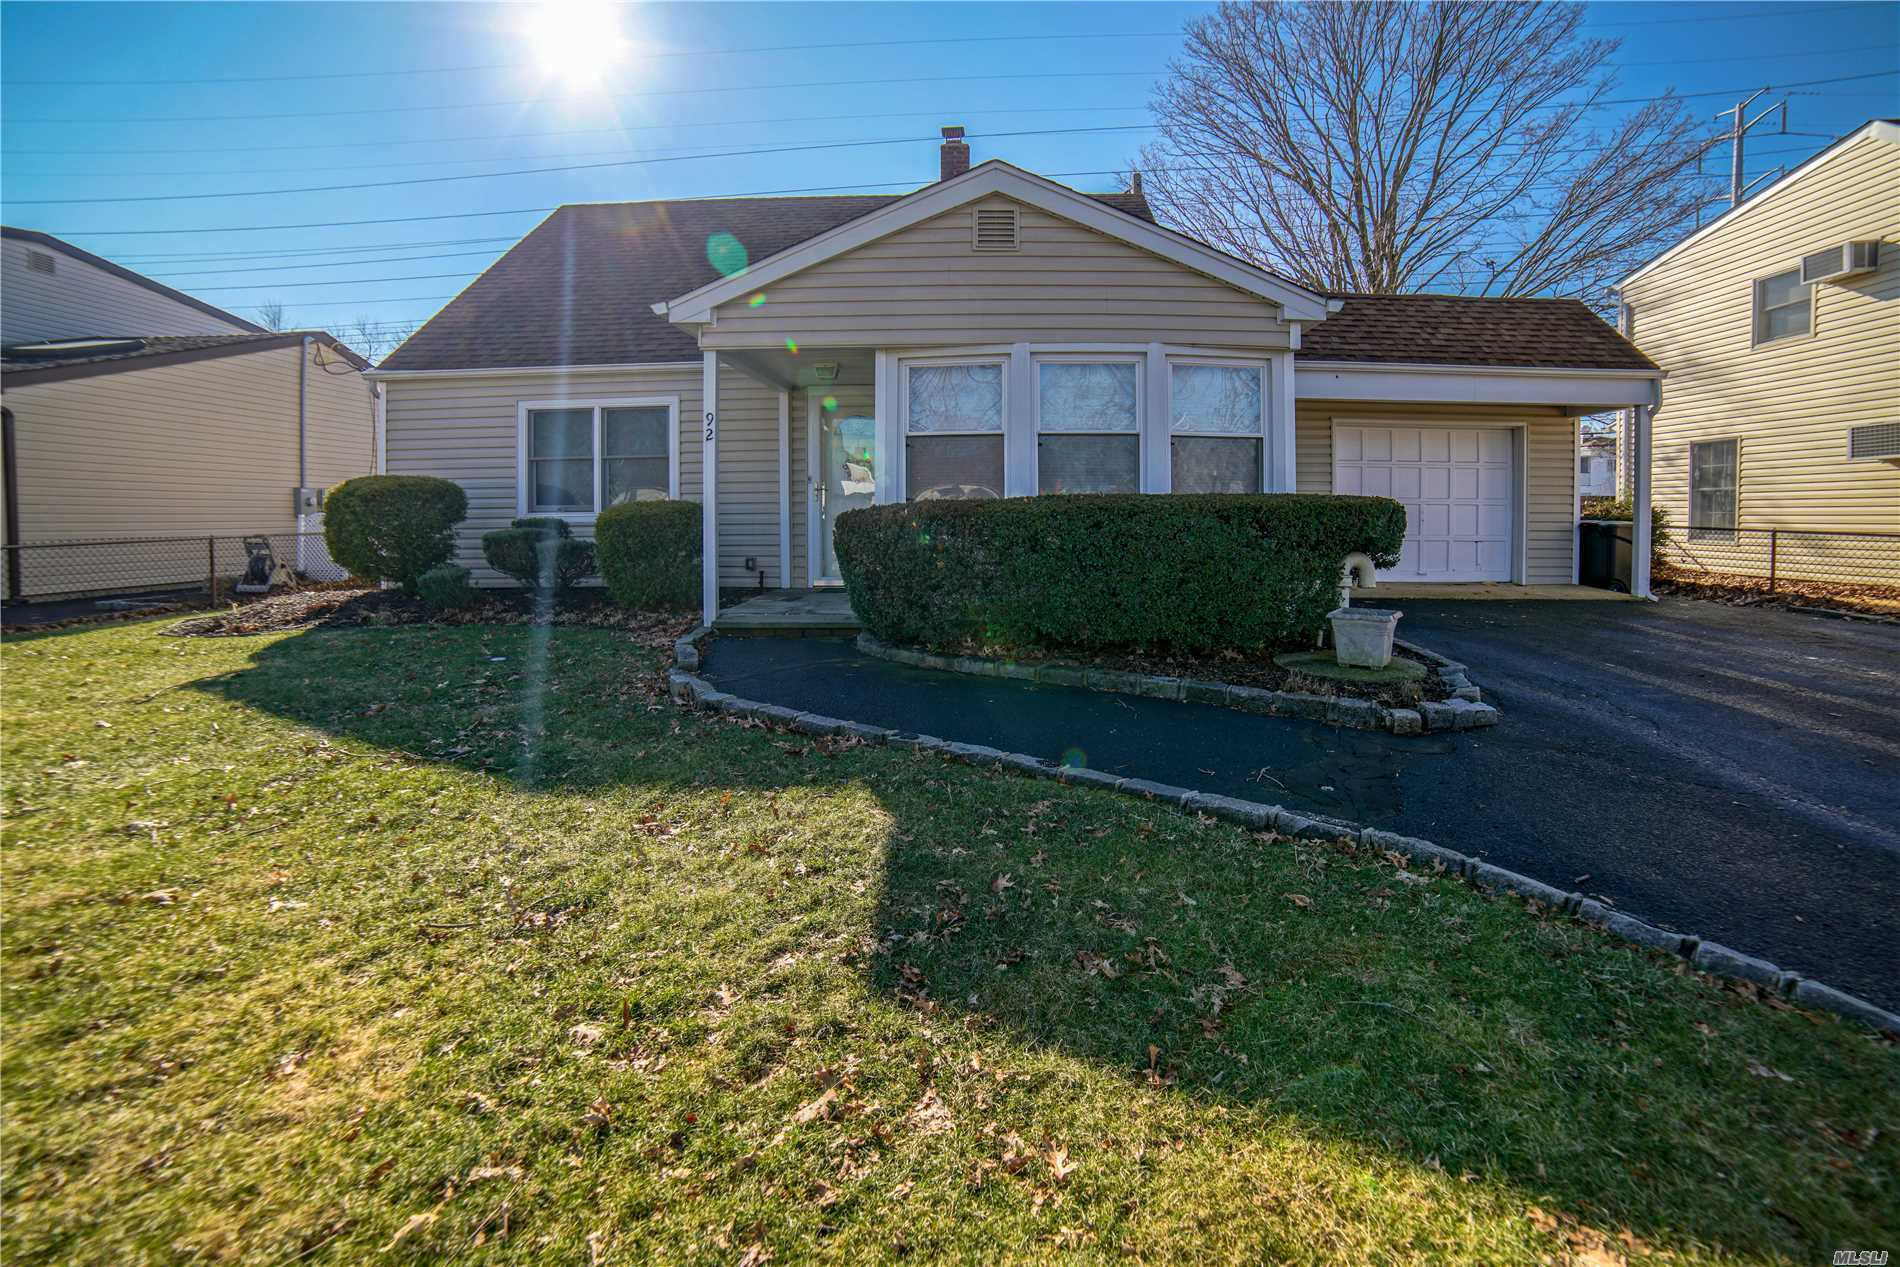 Come Check Out This Beautifully Well Kept Expanded Cape In Levittown. Kitchen Has Been Extended Forward By 9 Feet And Features An Oak Eat In Kitchen. Master Bedroom On First Floor With Half Bath And Separate Bedroom And A Recently Upgraded Bathroom On The First Floor. Hot Water Heater, Expansion Tank And Boiler Are Less Then 1 Year Old!. Spacious 2 Bedrooms Located Upstairs. 1.5 Car Garage W/Breezeway, Belgium Blacktop Driveway. Very Big Backyard With Plenty Of Space For All Your Needs!